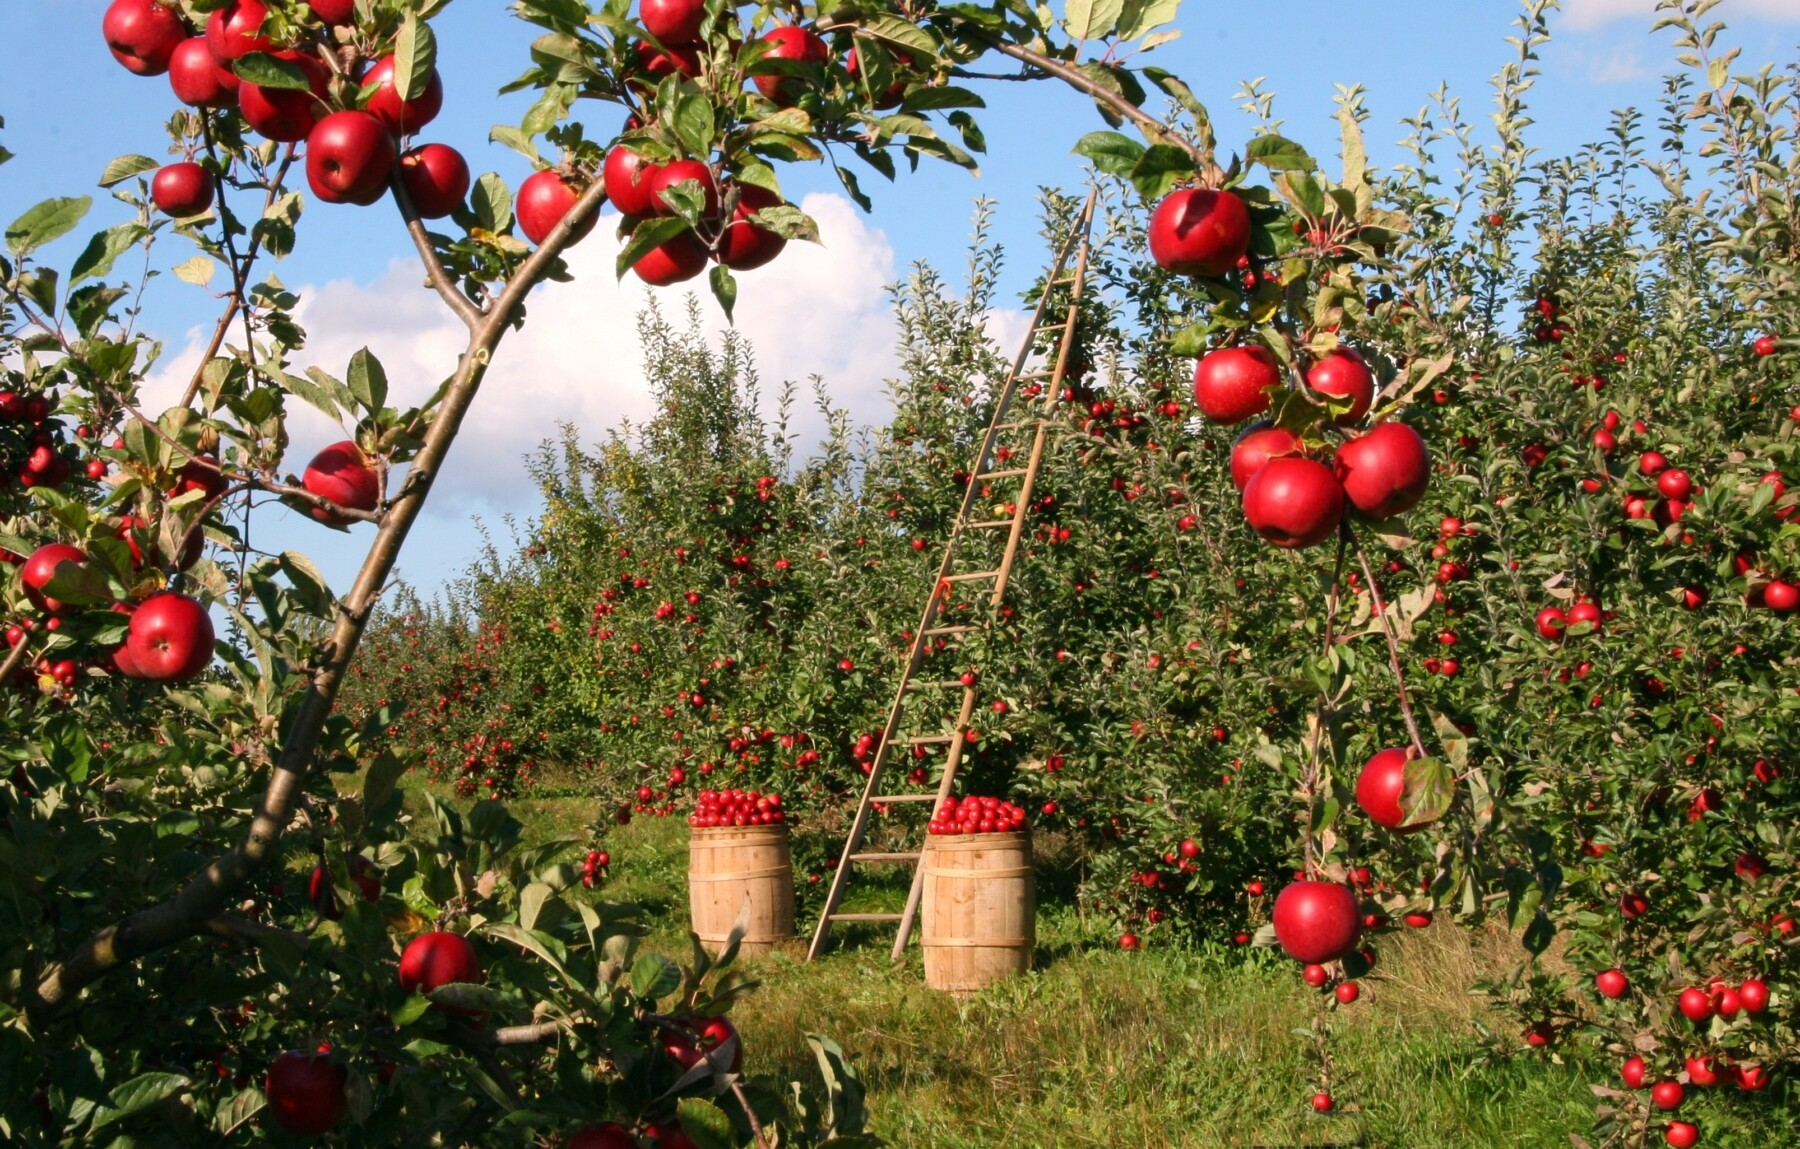 Planting an Orchard